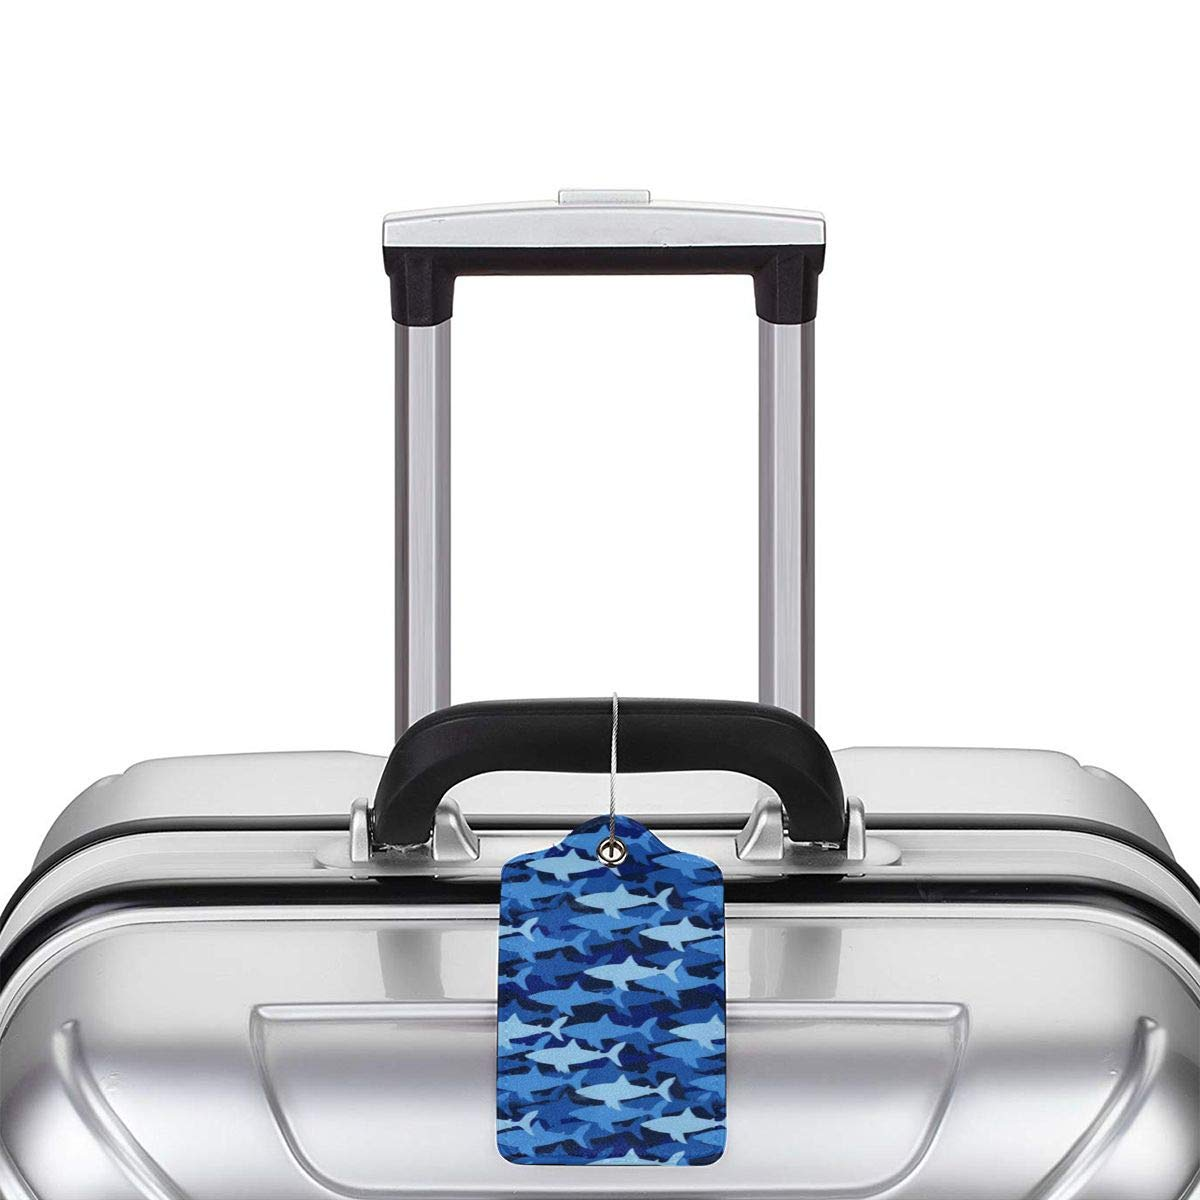 Blue Shark Silhouette Travel Luggage Tags With Full Privacy Cover Leather Case And Stainless Steel Loop